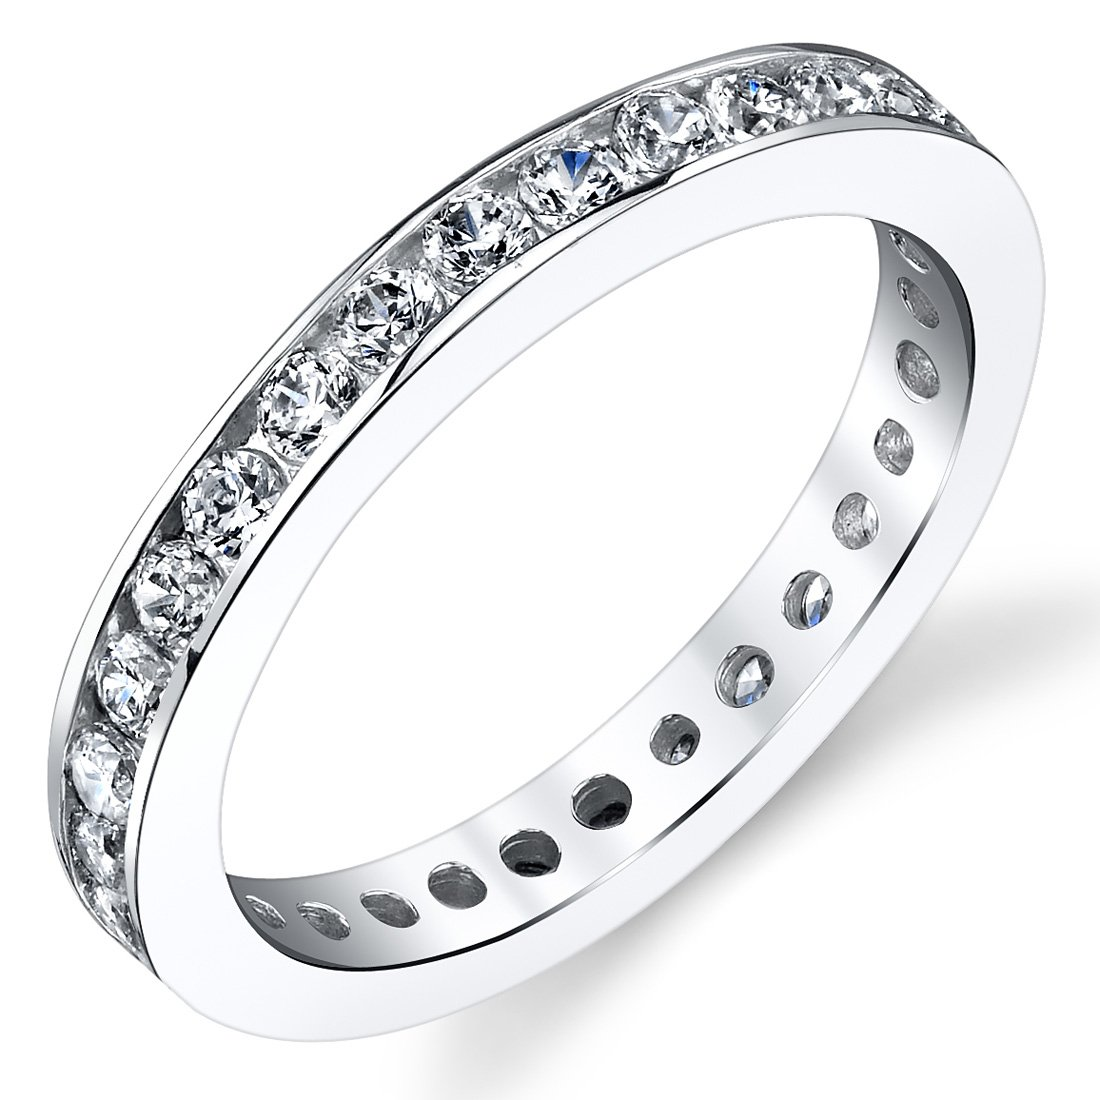 1.50 Carats White Cubic Zirconia Eternity Ring Sterling Silver Size 6